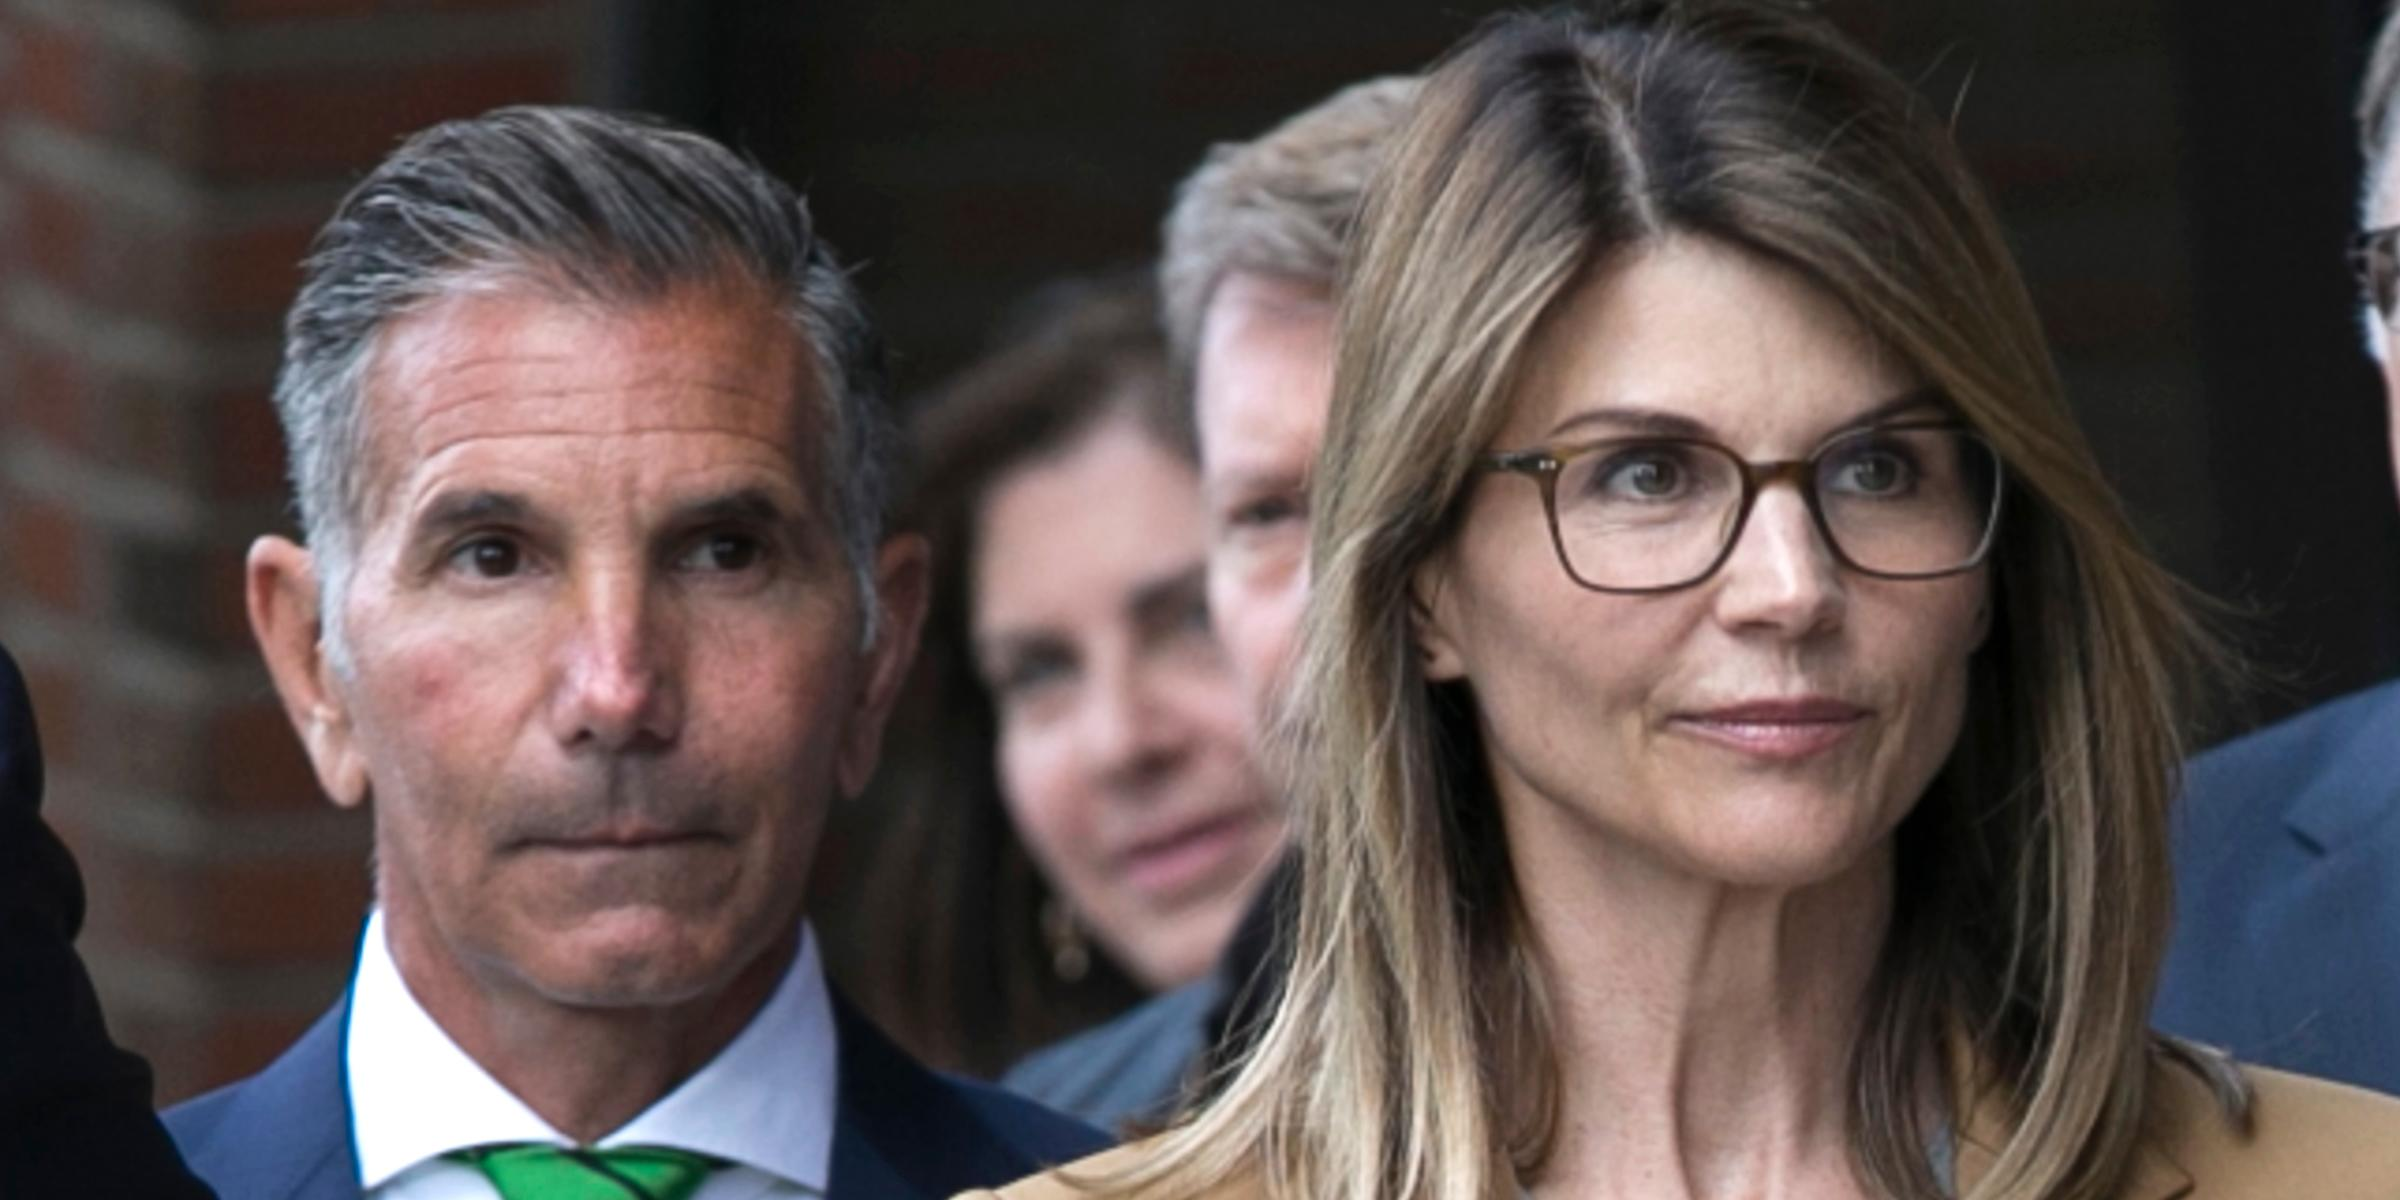 Lori Loughlin's lawyers want bribe scheme case dropped